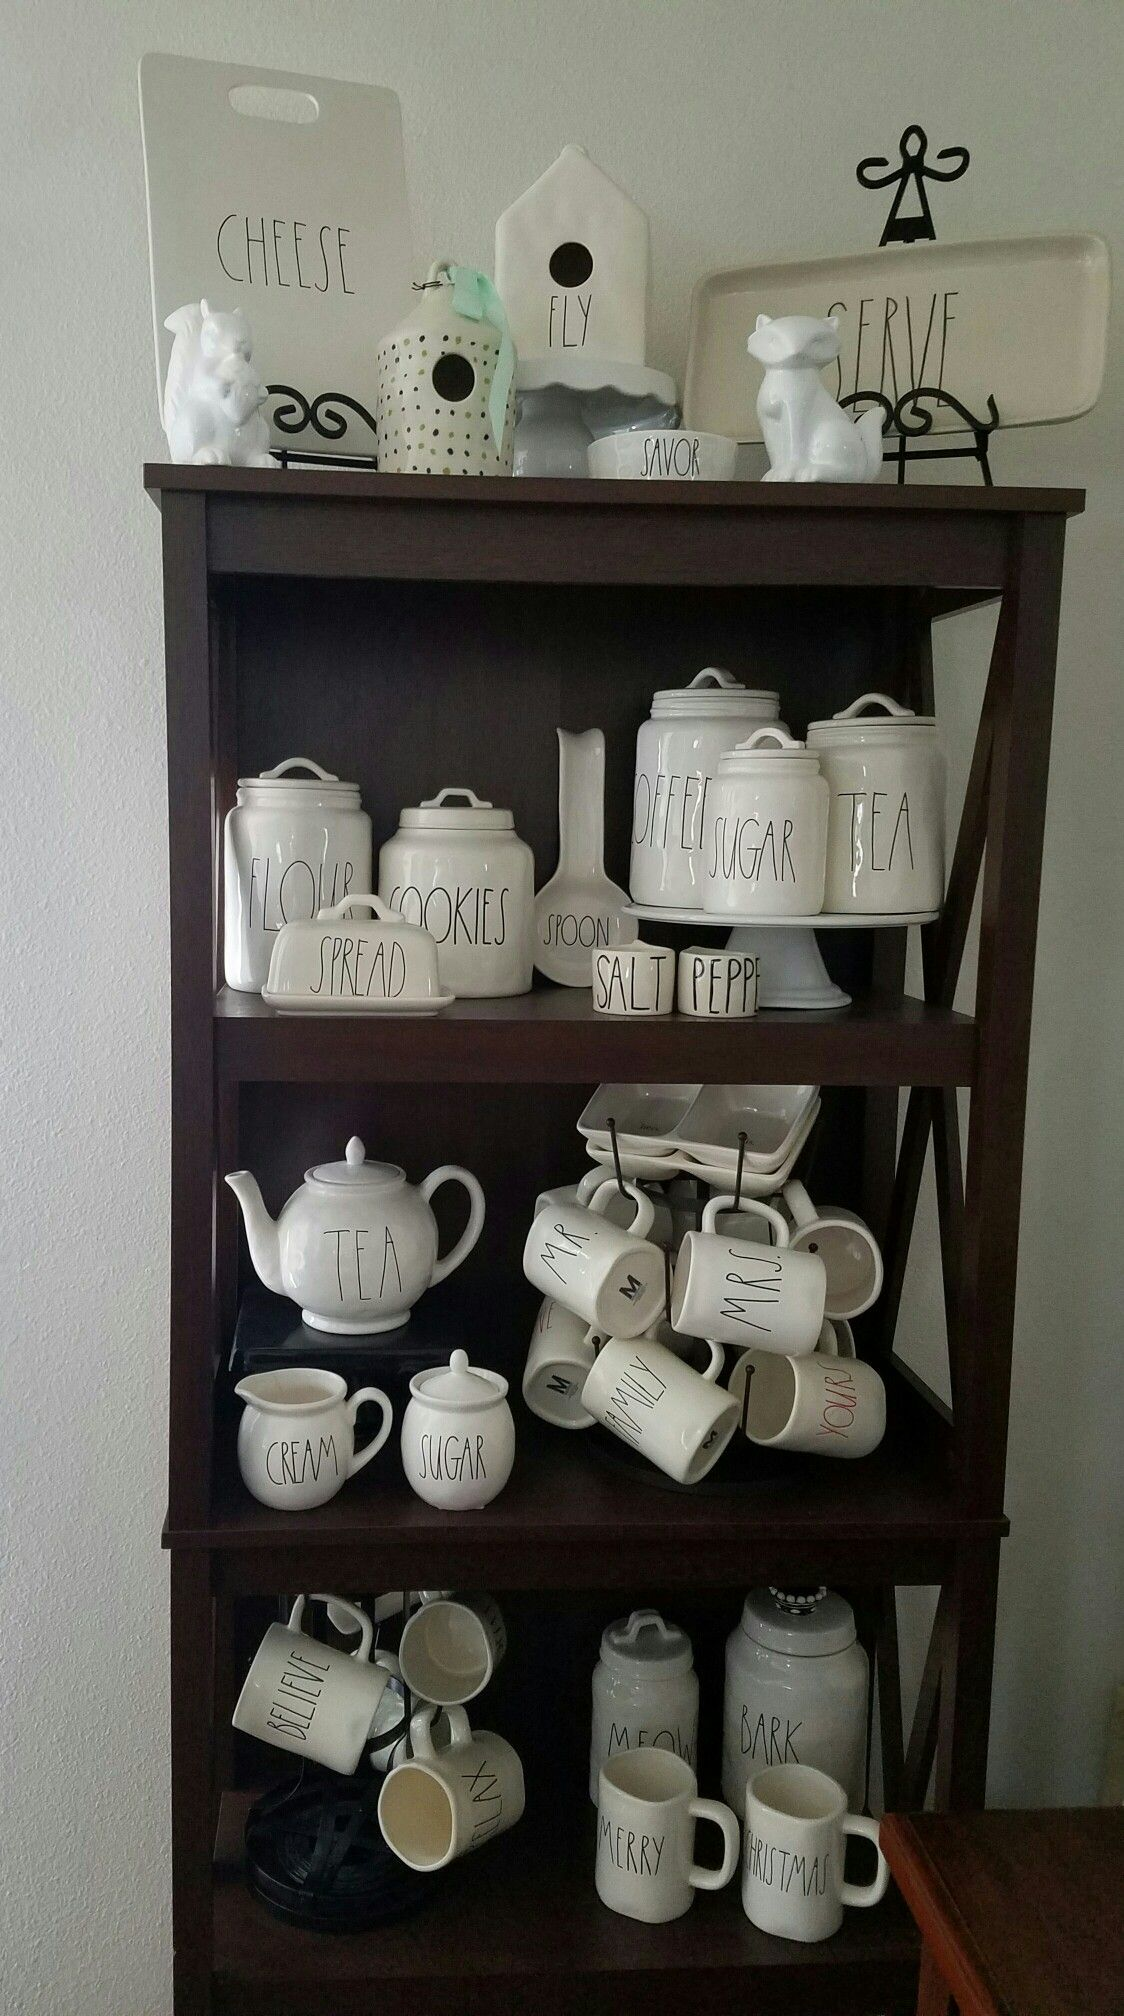 agratefulsoul posted her collection from rae dunn of gorgeous clay my updated rae dunn collection